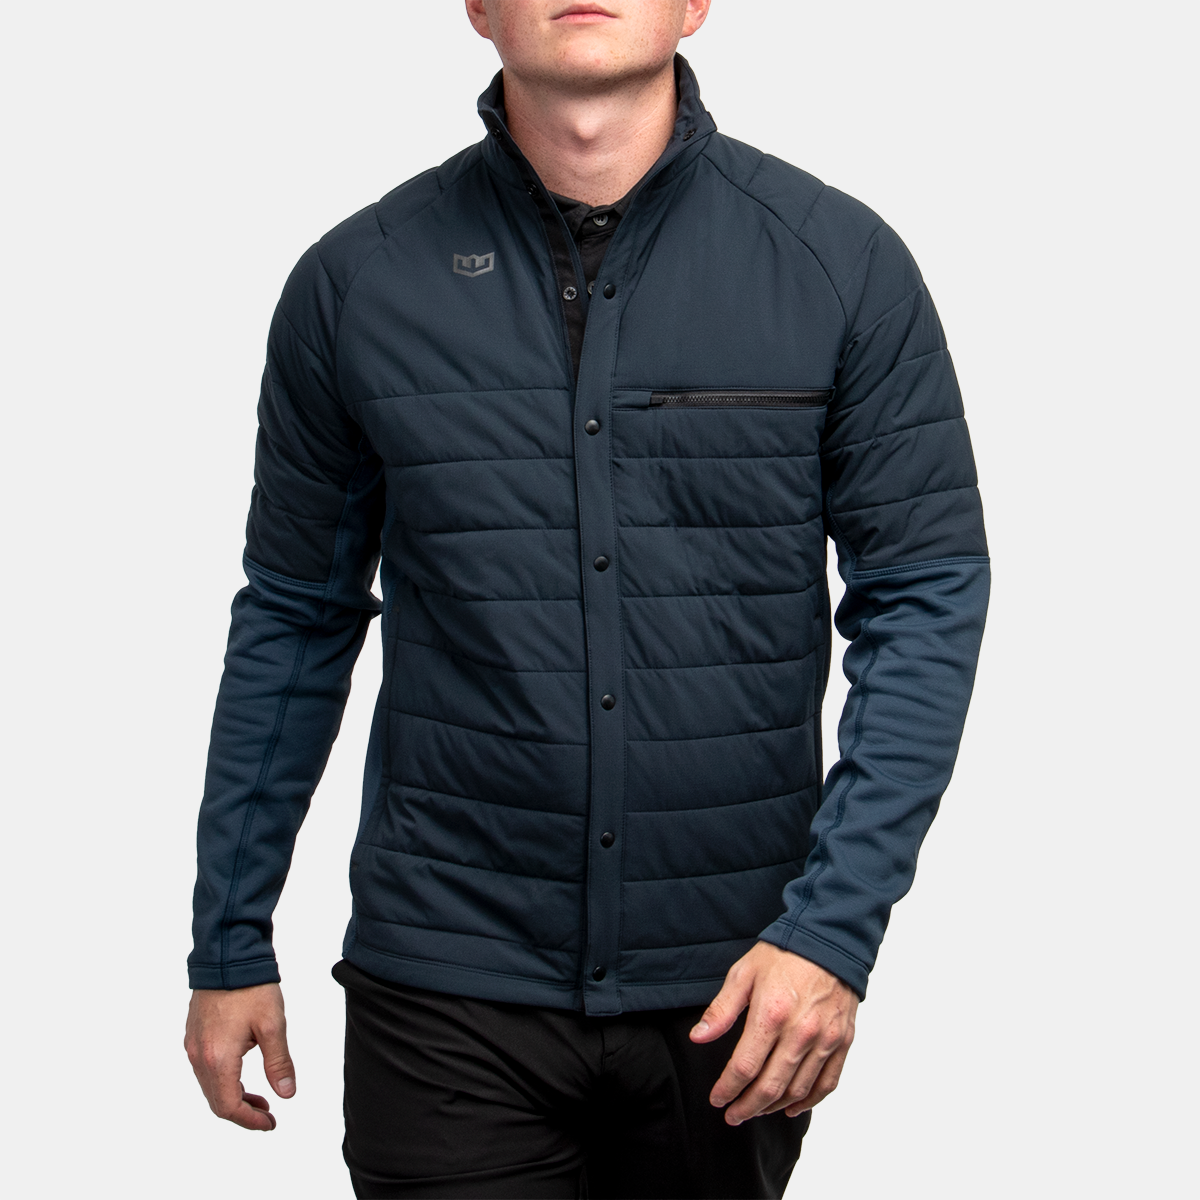 Ace Hybrid Jacket 3.0 - Navy